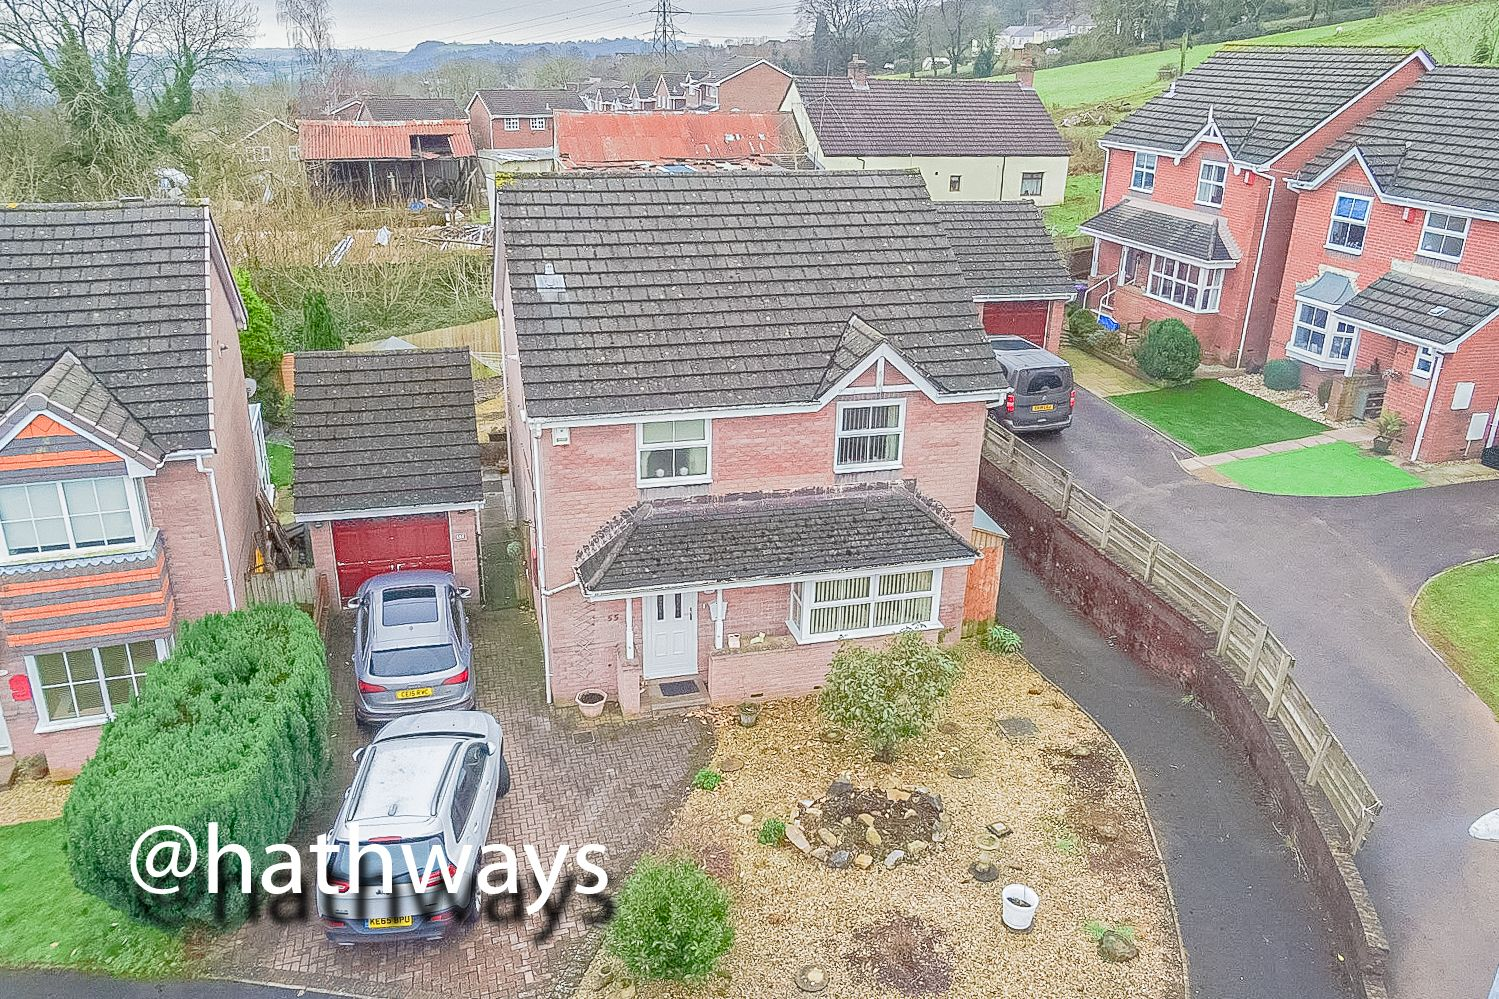 3 bed house for sale in Hawkes Ridge - Property Image 1